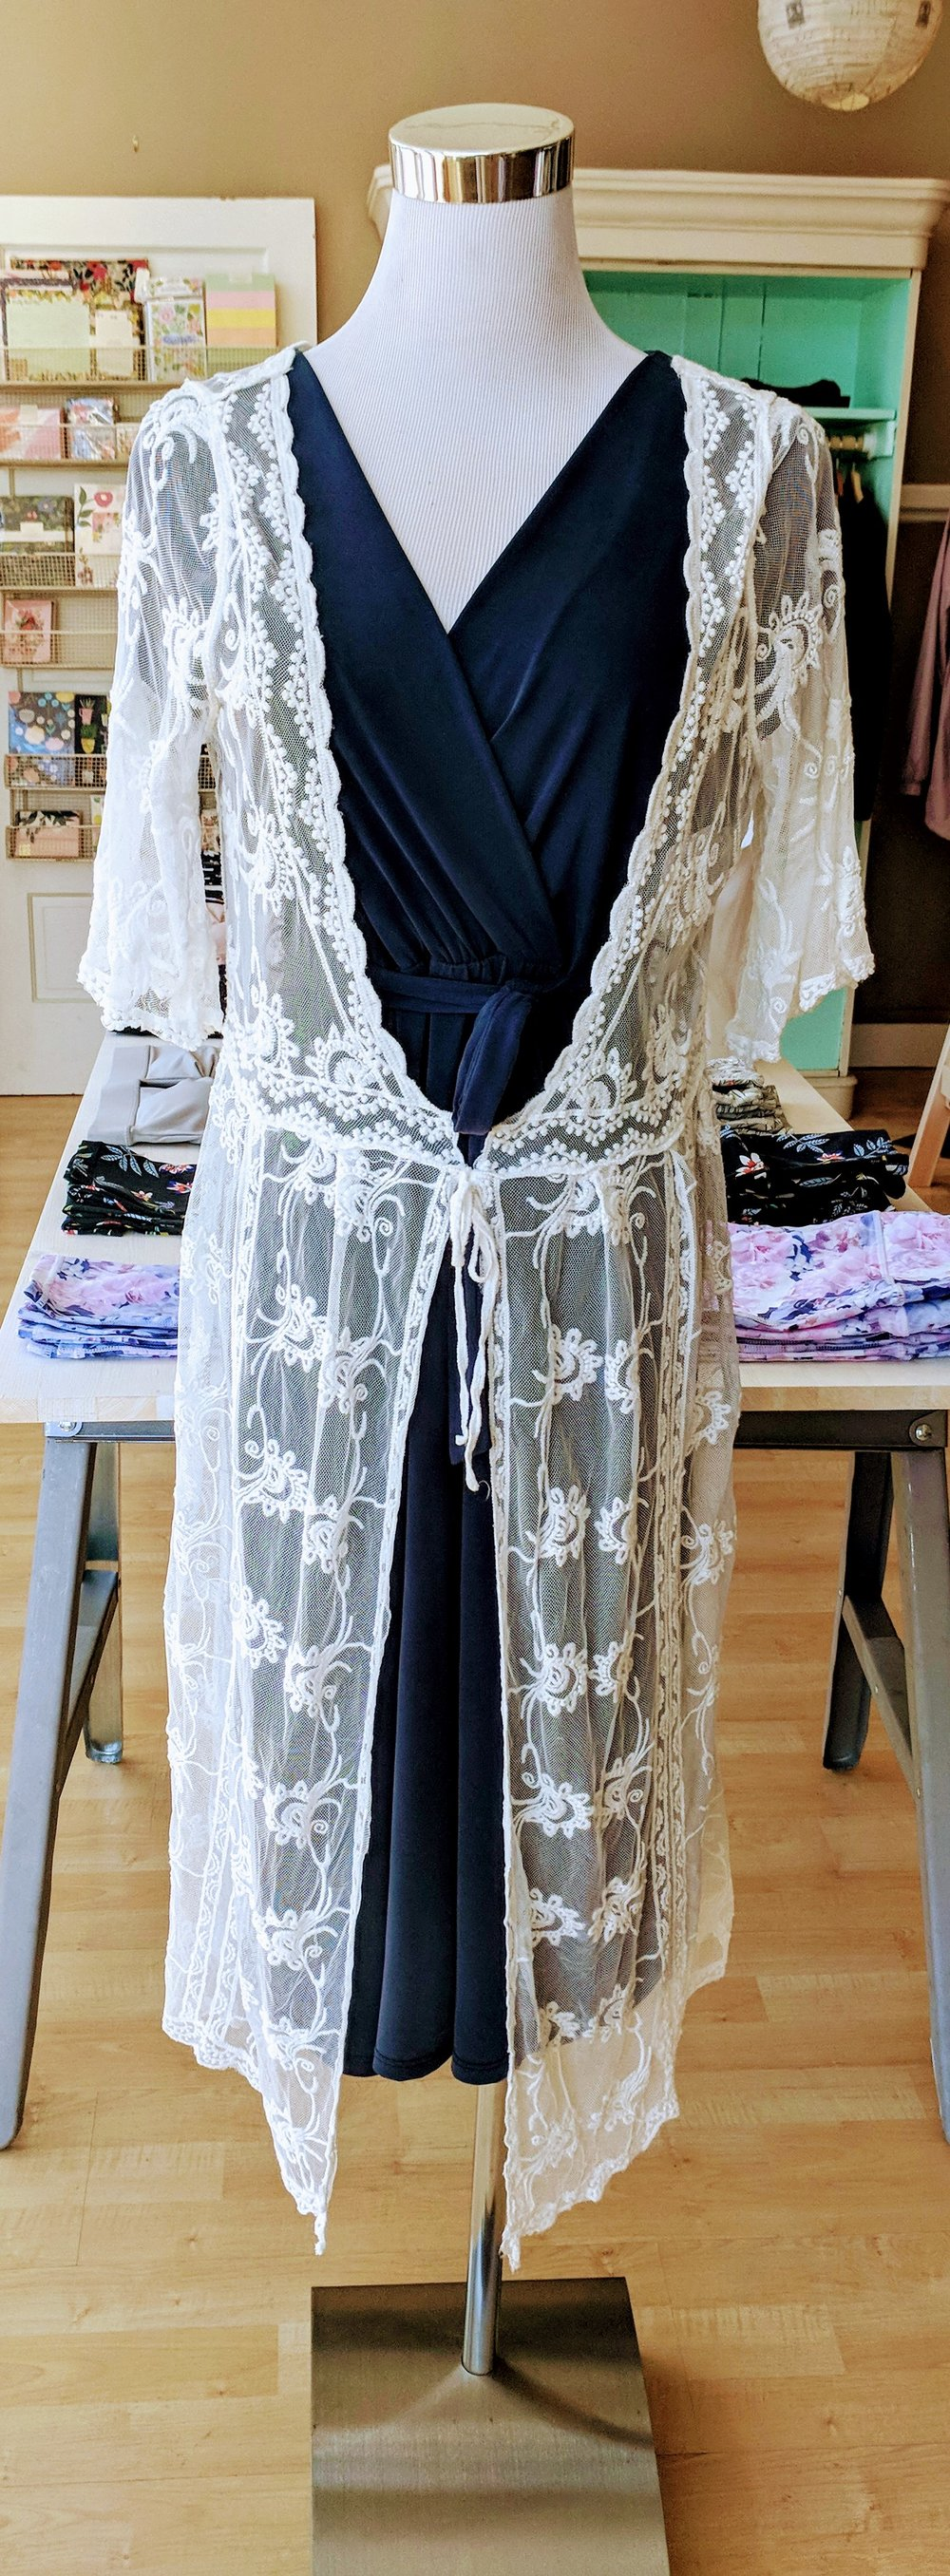 Sheer Lace Duster w/ Drawstring $38